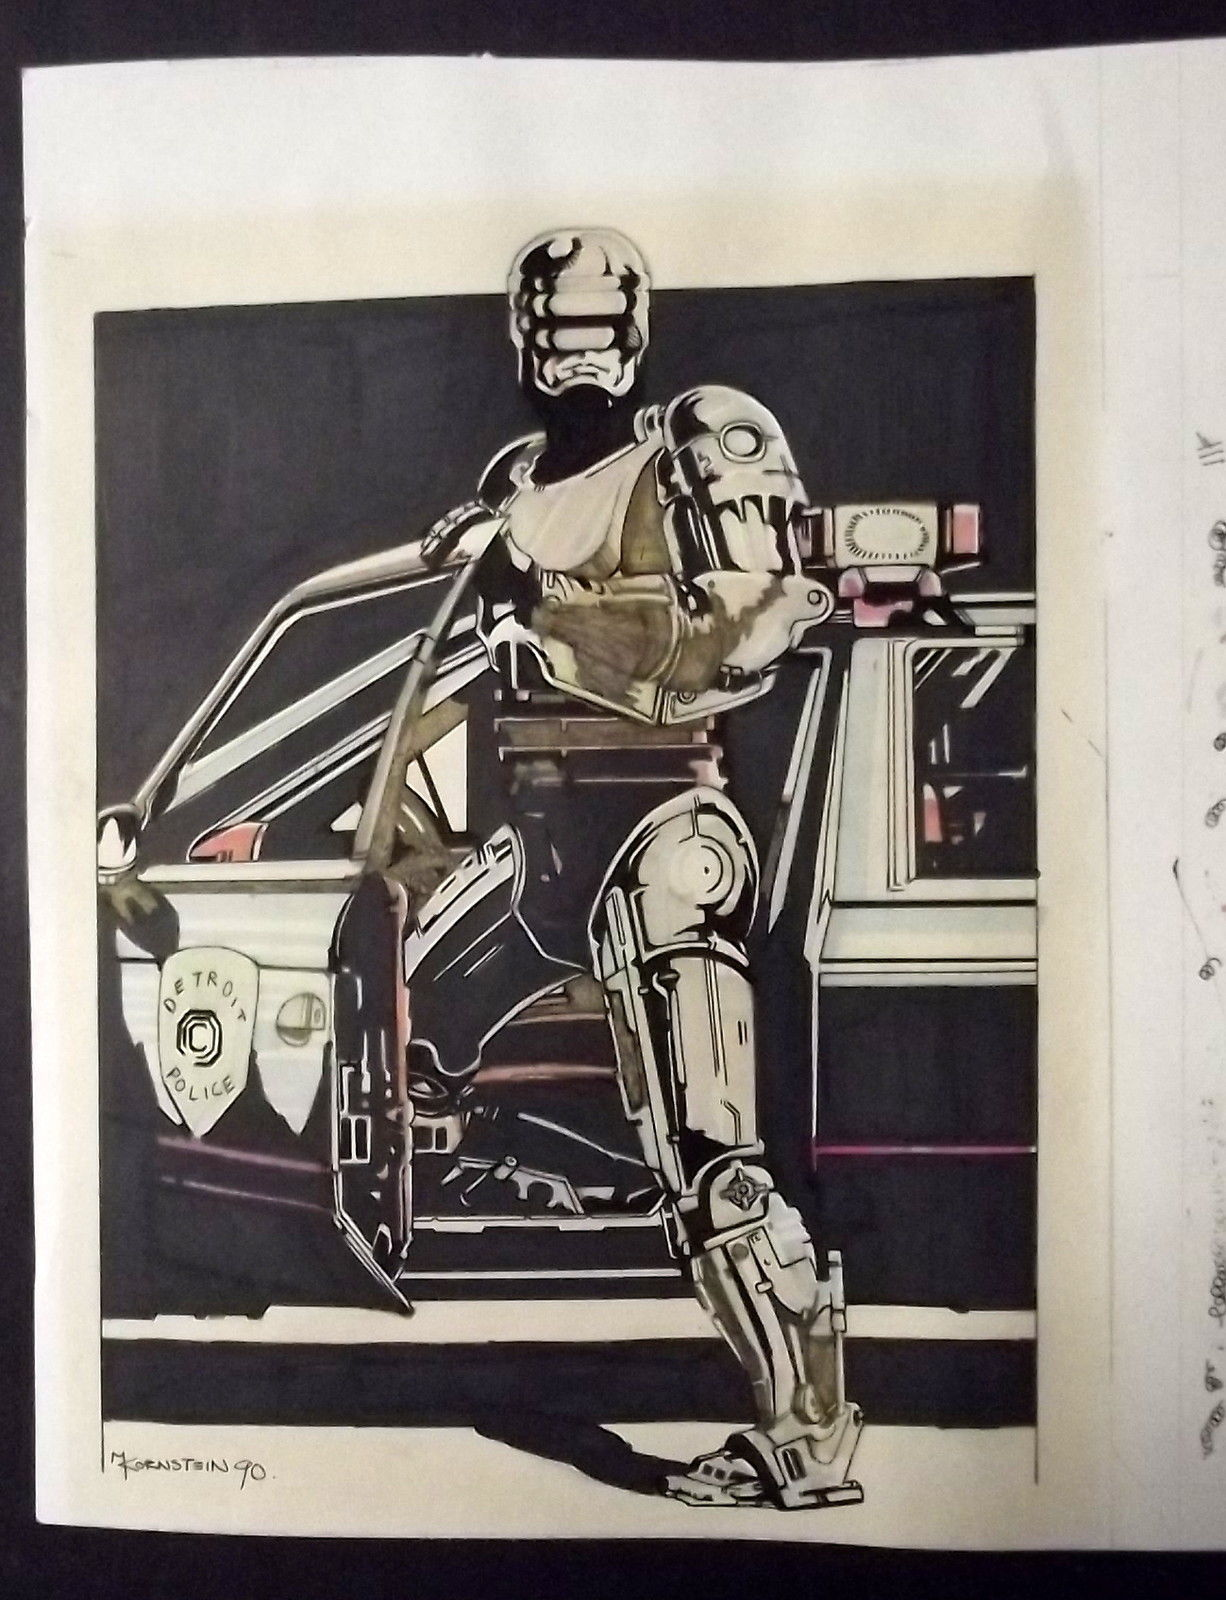 KORNSTEIN ORIG,ARTWORK (ROBO COP) ORIGINAL ARTWORK COVER